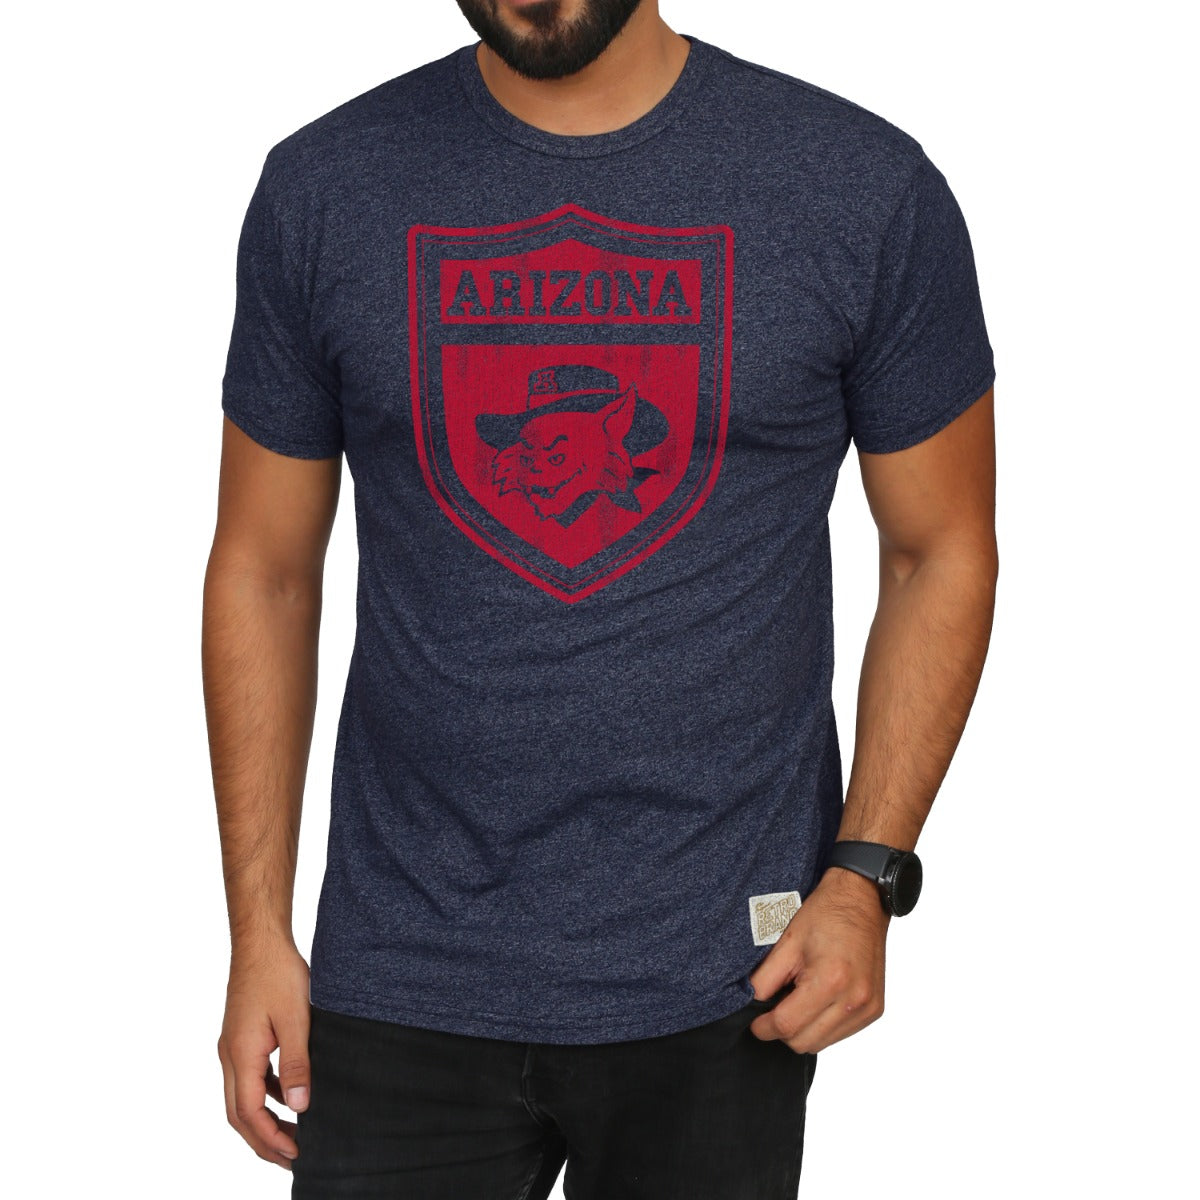 Arizona Wildcats Tri-Blend Mock Twist Unisex Tee